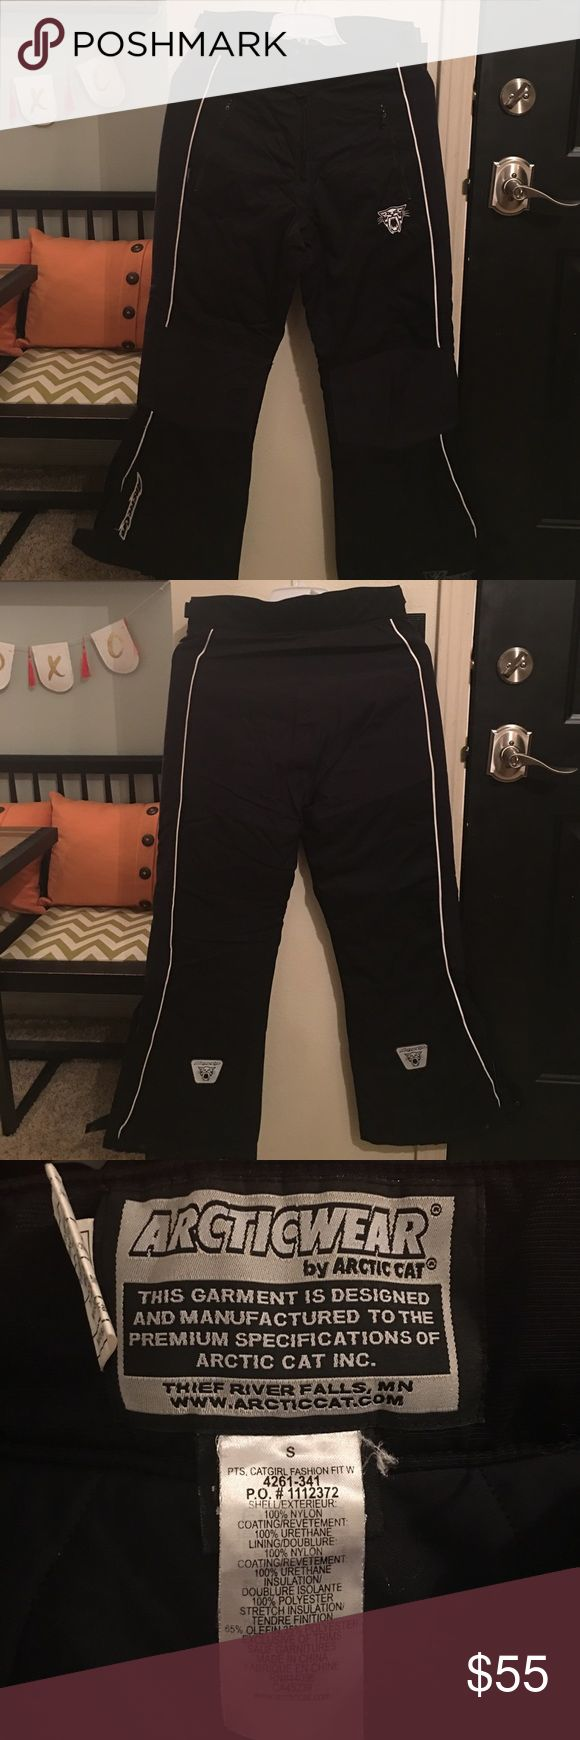 Arctic Cat ladies snowmobile pants These pants are so warm